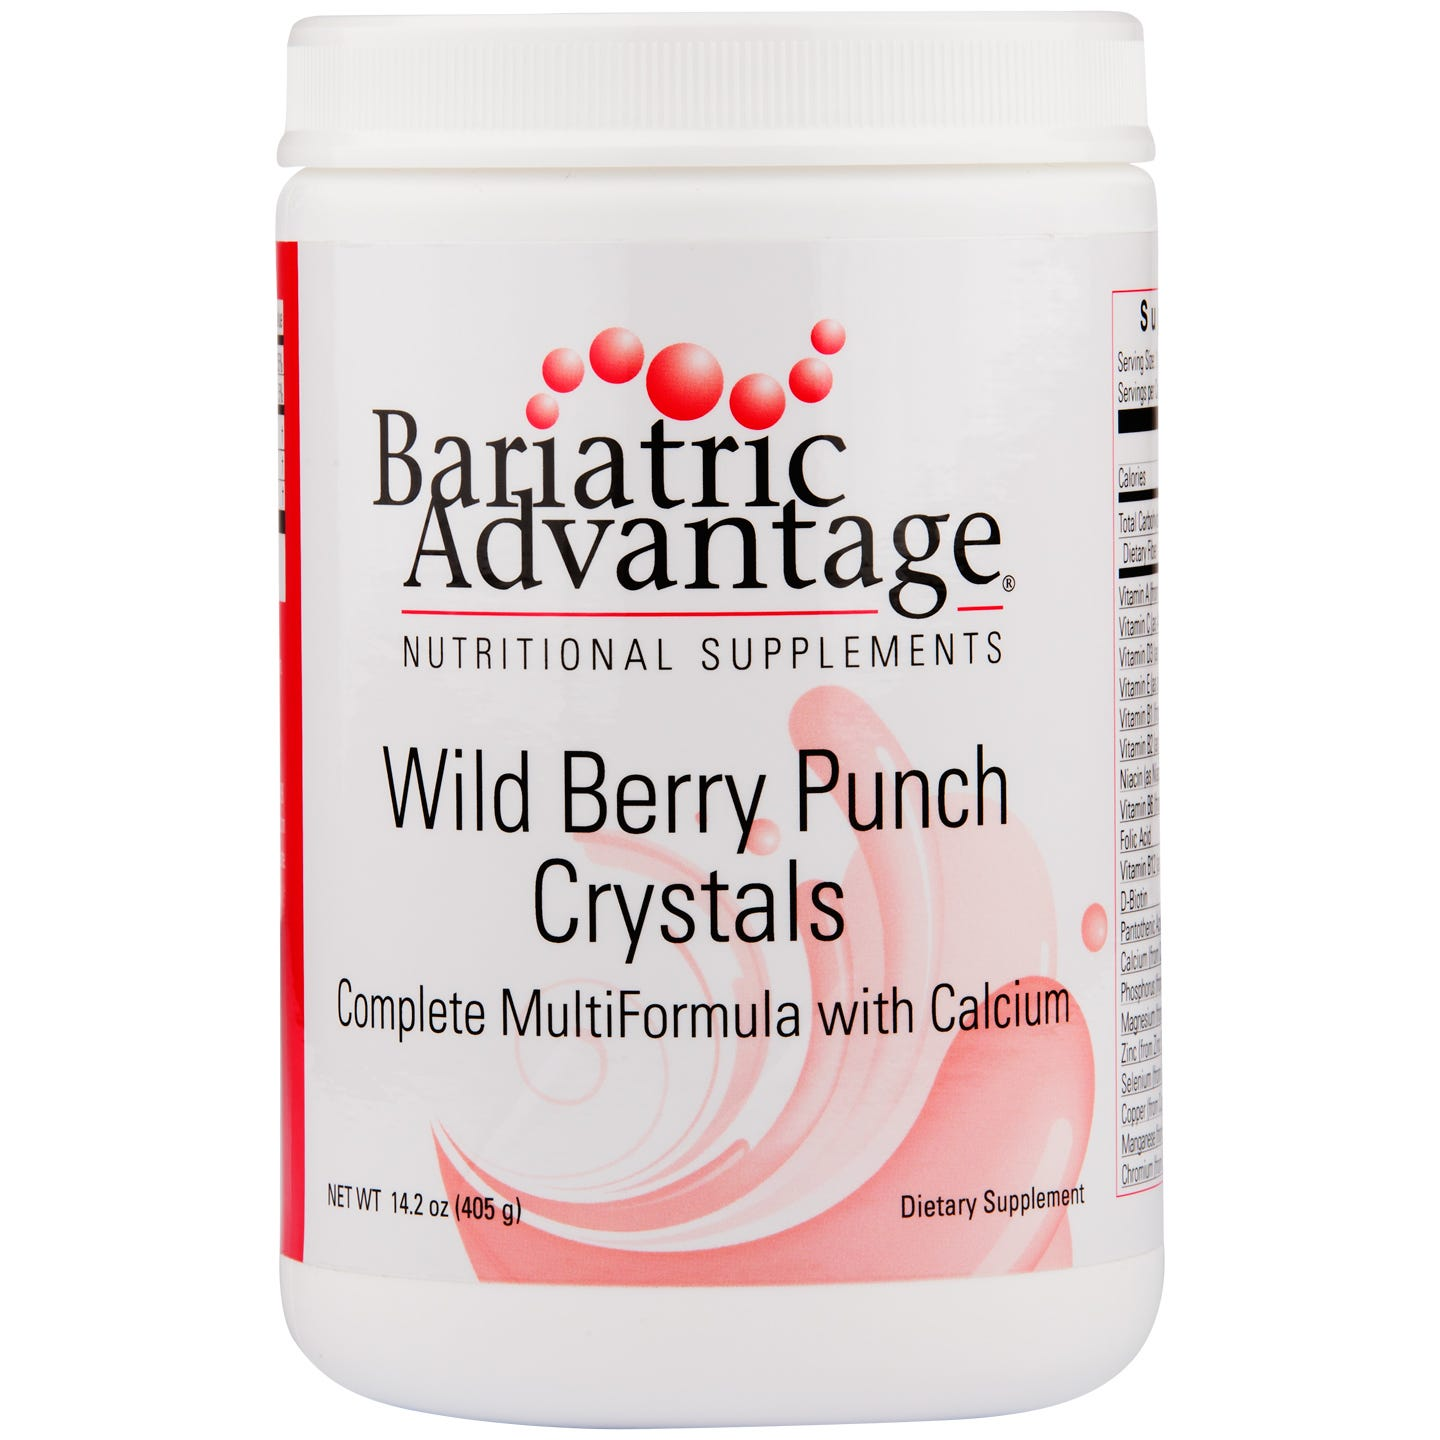 Multi Formula Crystal Wild Berry Punch 14.2 oz - Bariatric Advantage - Rapid Diet Weight Loss Products Shop